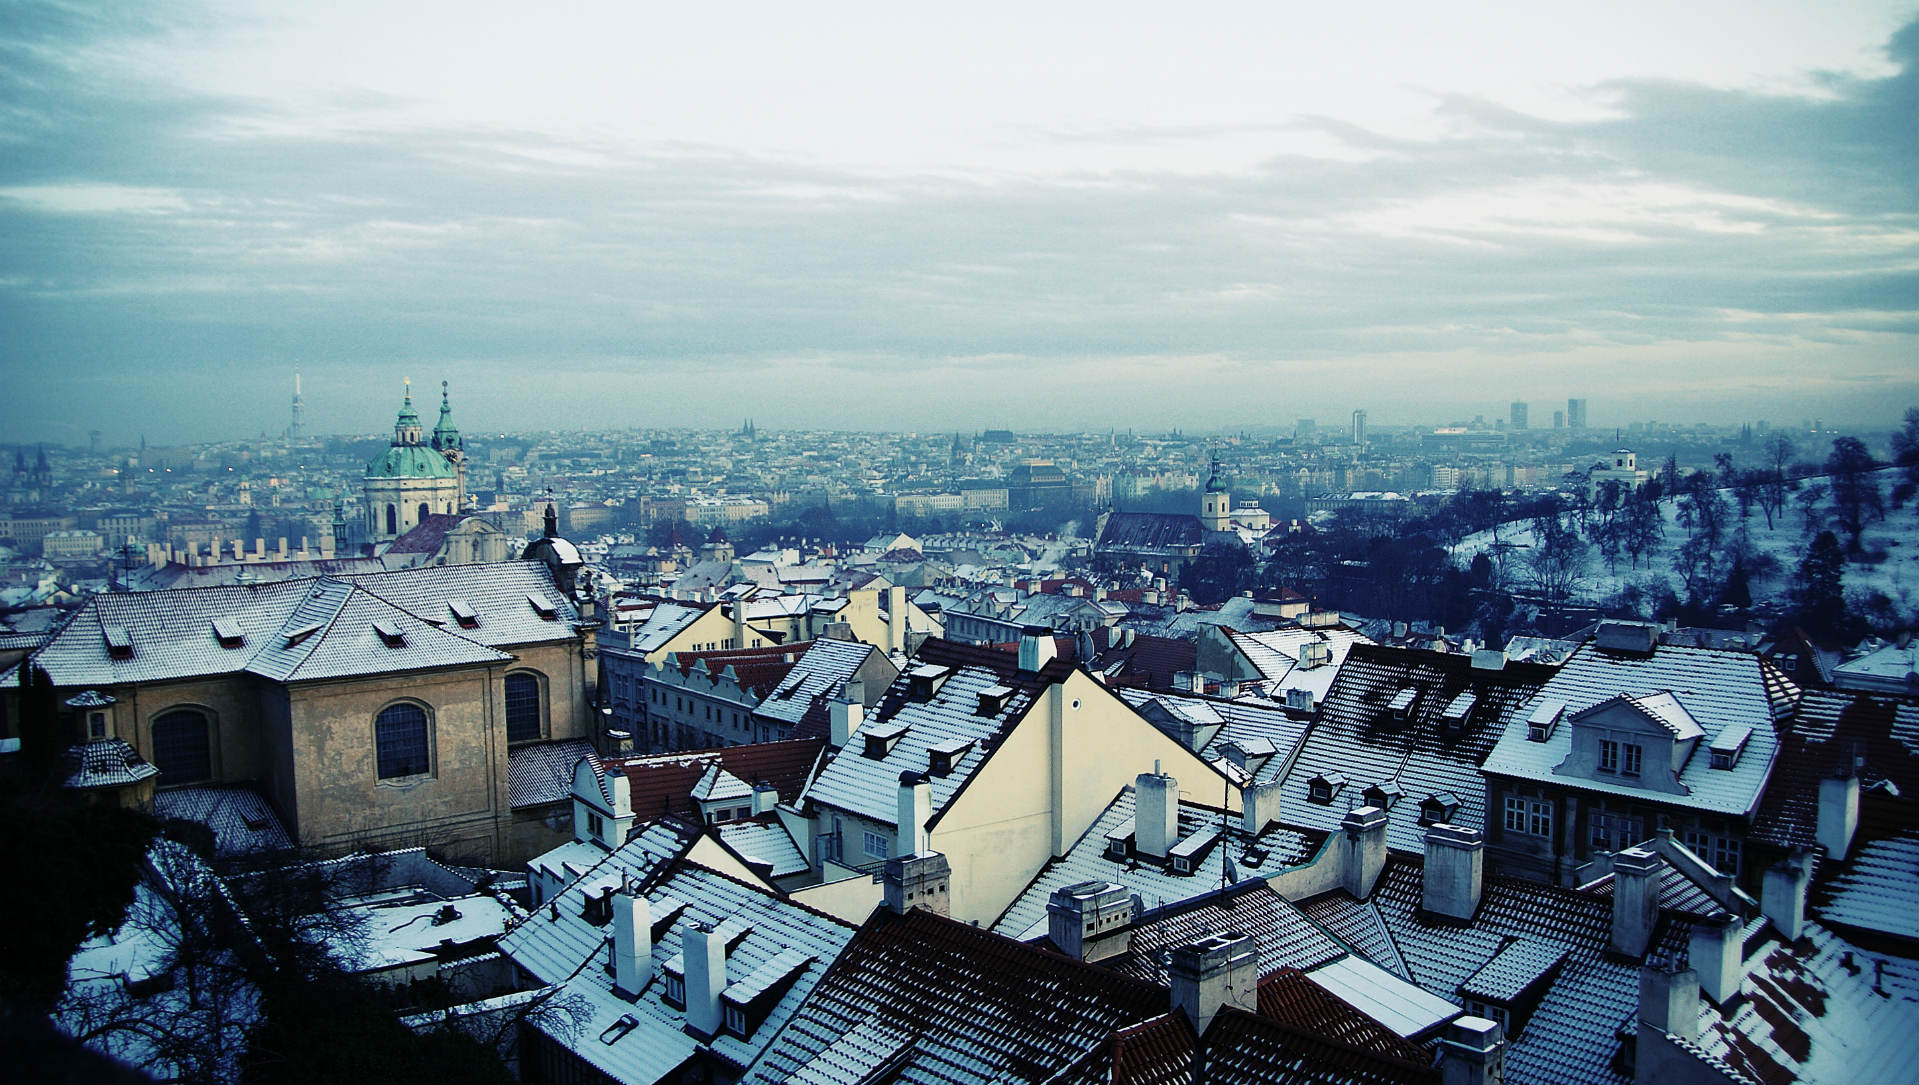 view of city rooftops on a snowy day